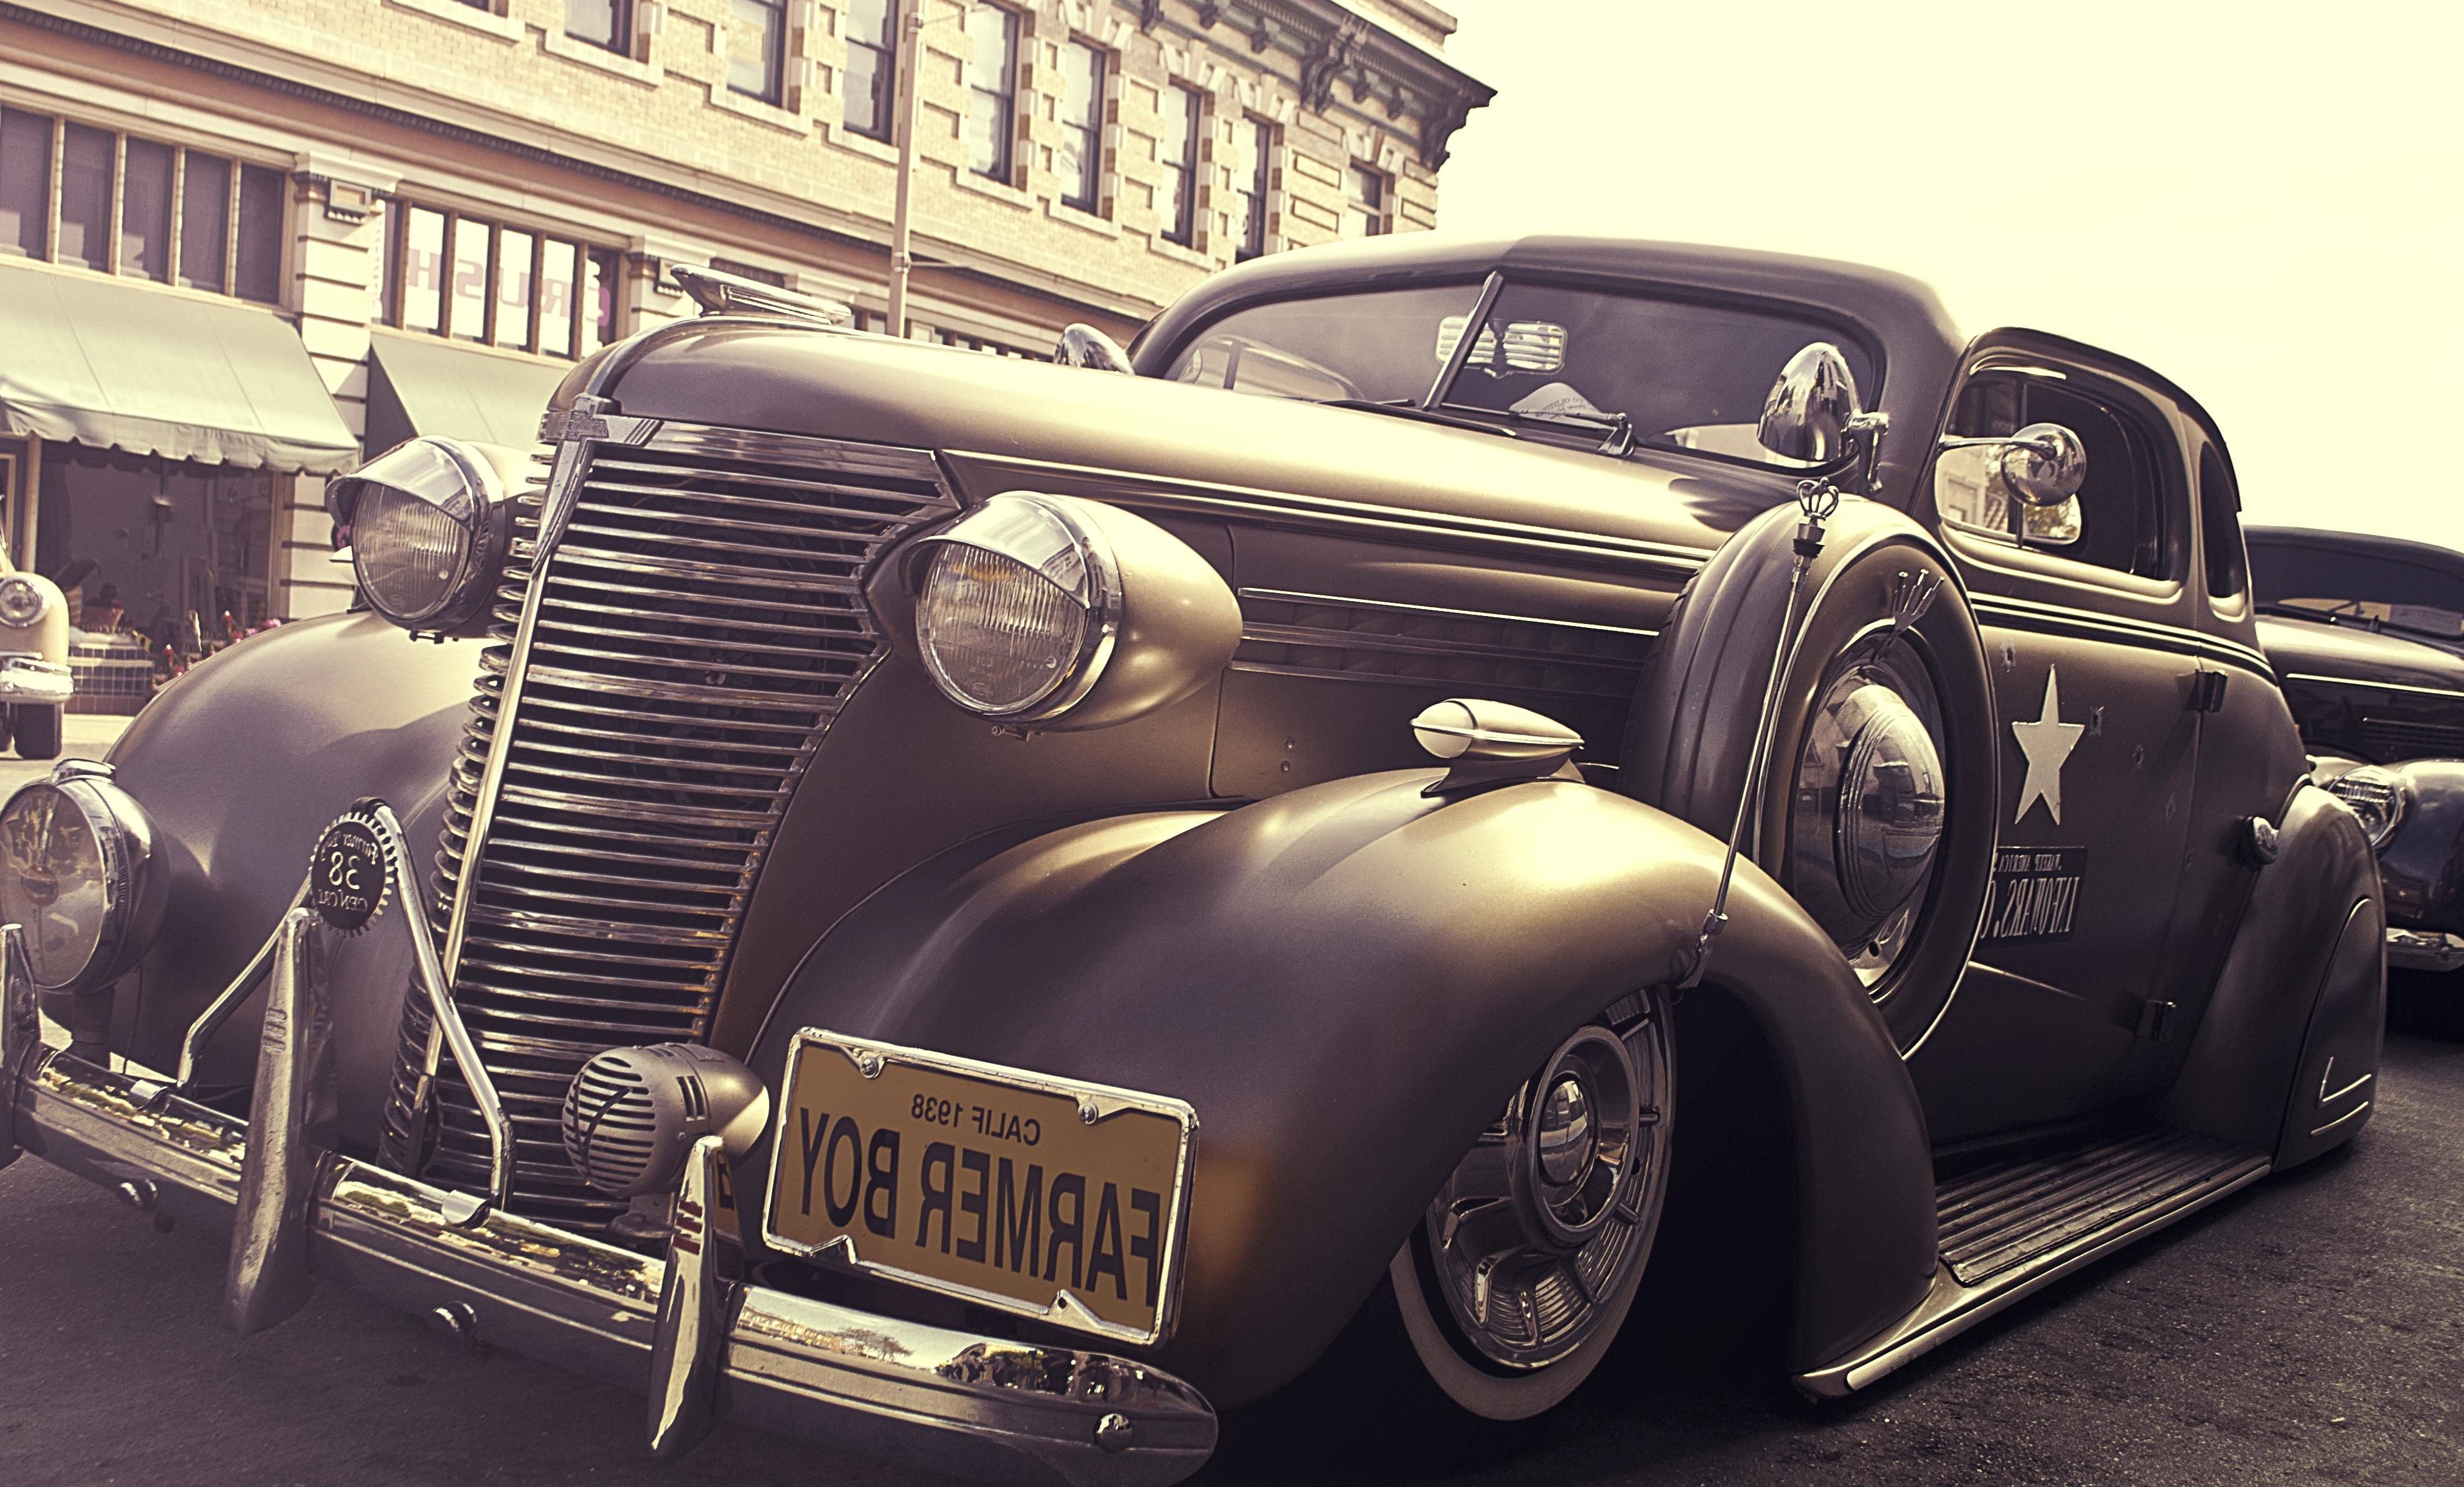 Free picture: car, classic, chrome, history, vehicle, nostalgia ...